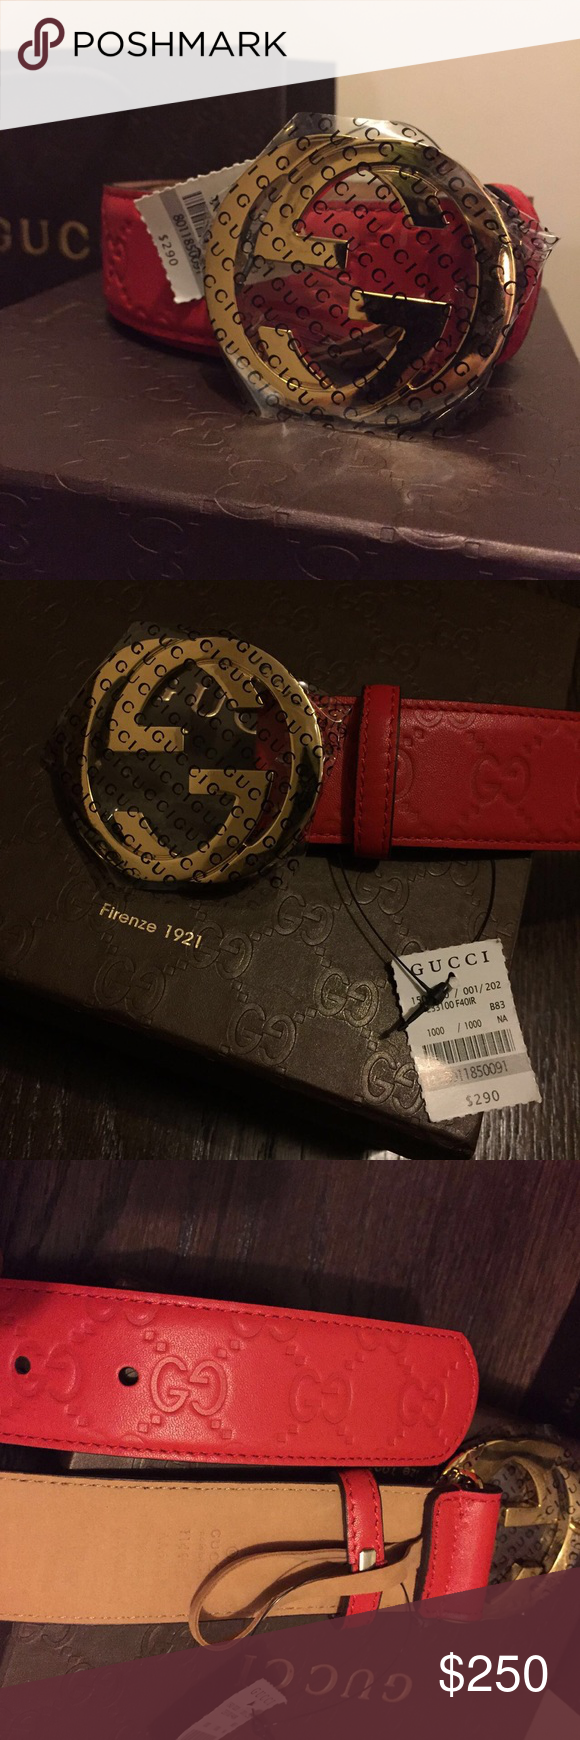 8e145e570 Authentic Firenze 1921 Red Gucci Belt with gold buckle. Fits Mens waist  size 34-36 Brand new with tag Comes with original box and dust bag TEXT ME  (559) ...